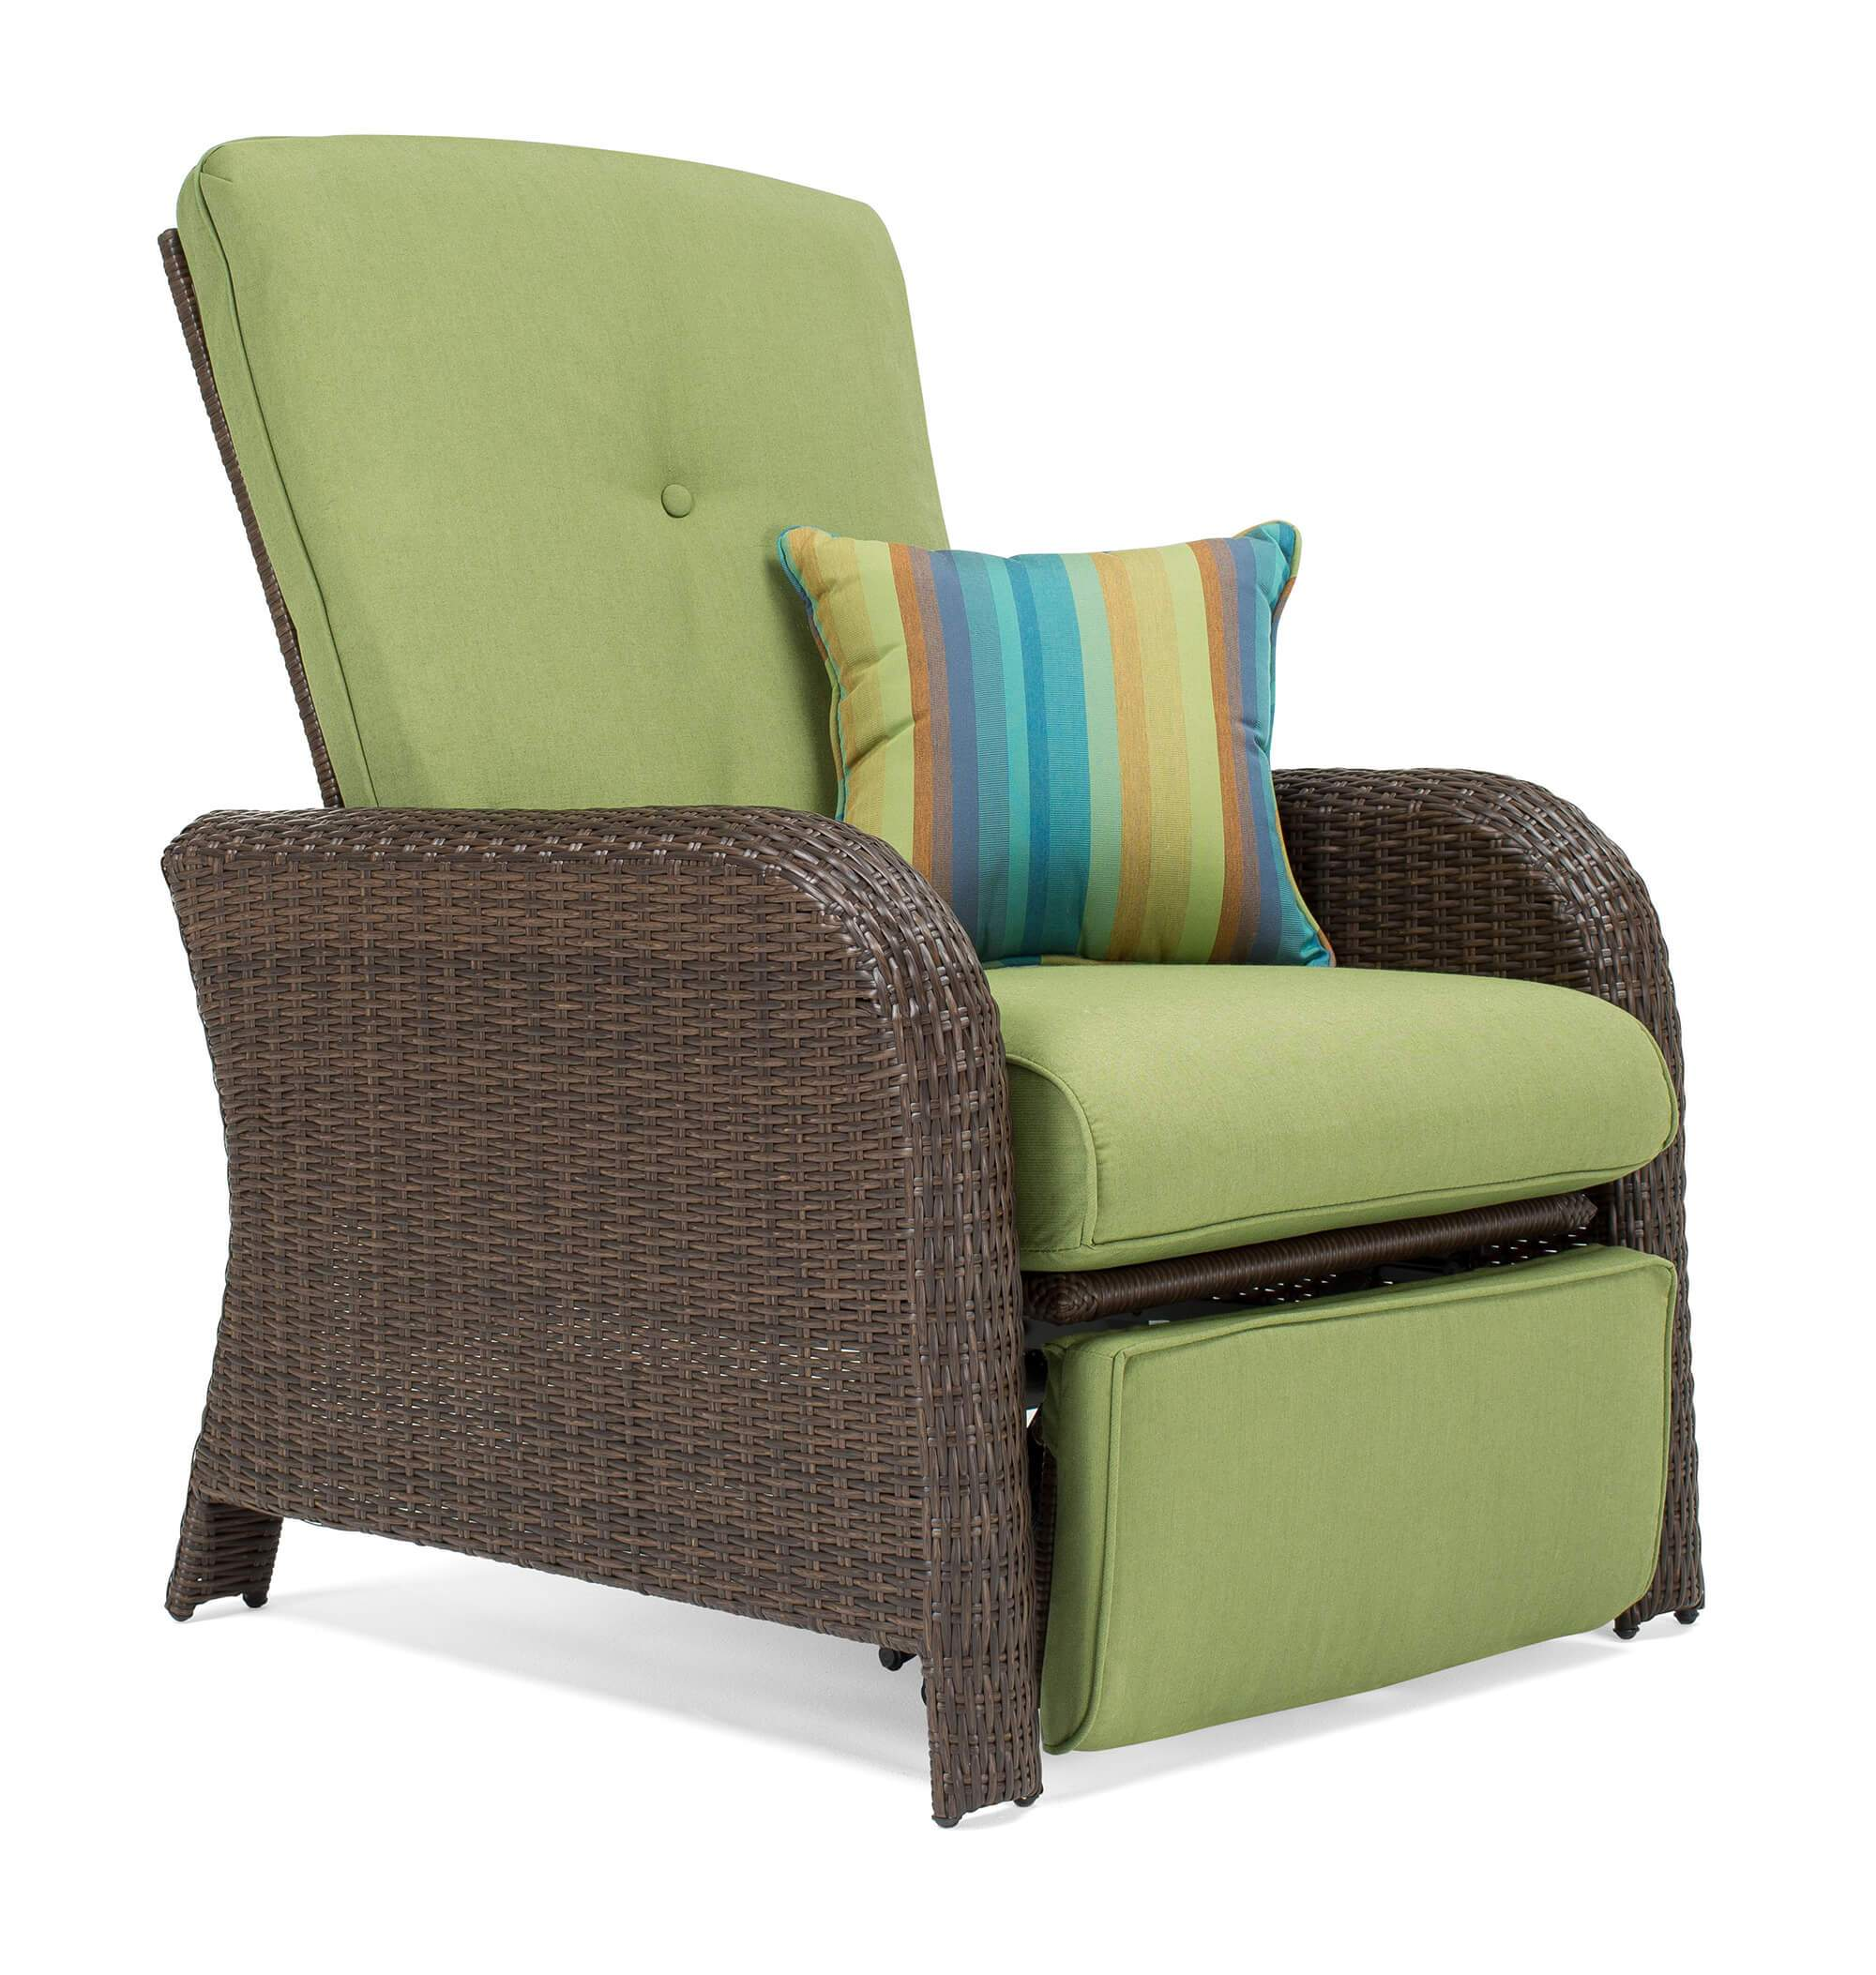 Remarkable Sawyer Patio Recliner La Z Boy Outdoor Gamerscity Chair Design For Home Gamerscityorg